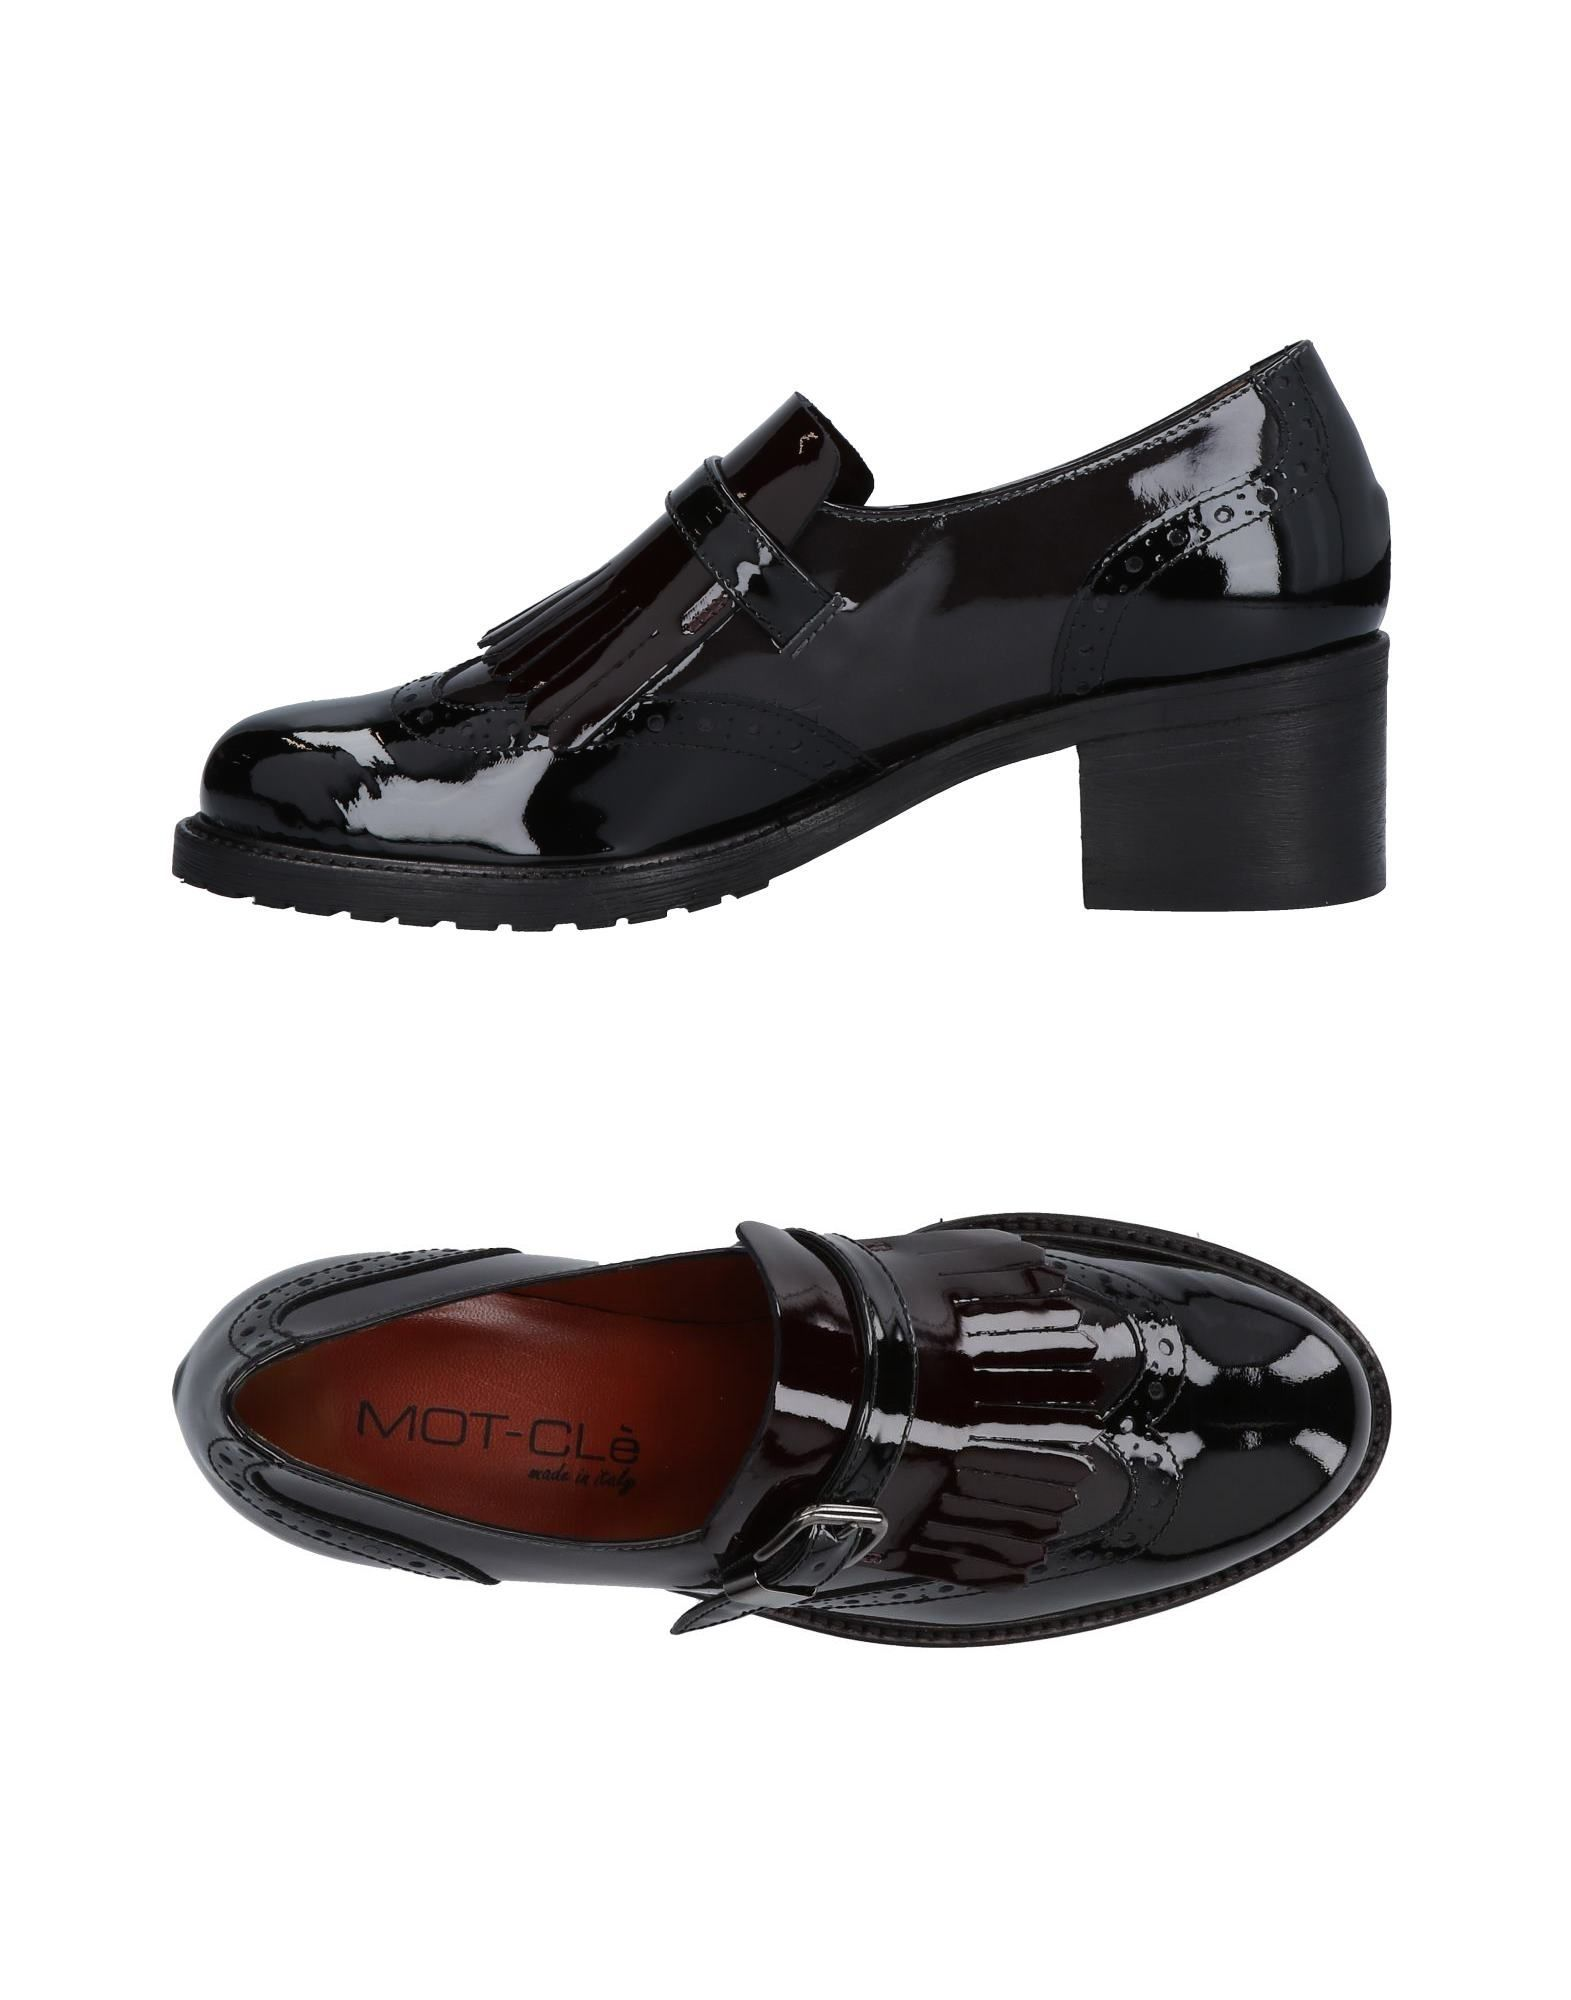 Mot-Clè Loafers - Women Mot-Clè Loafers online - on  United Kingdom - online 11486712CF 290dda